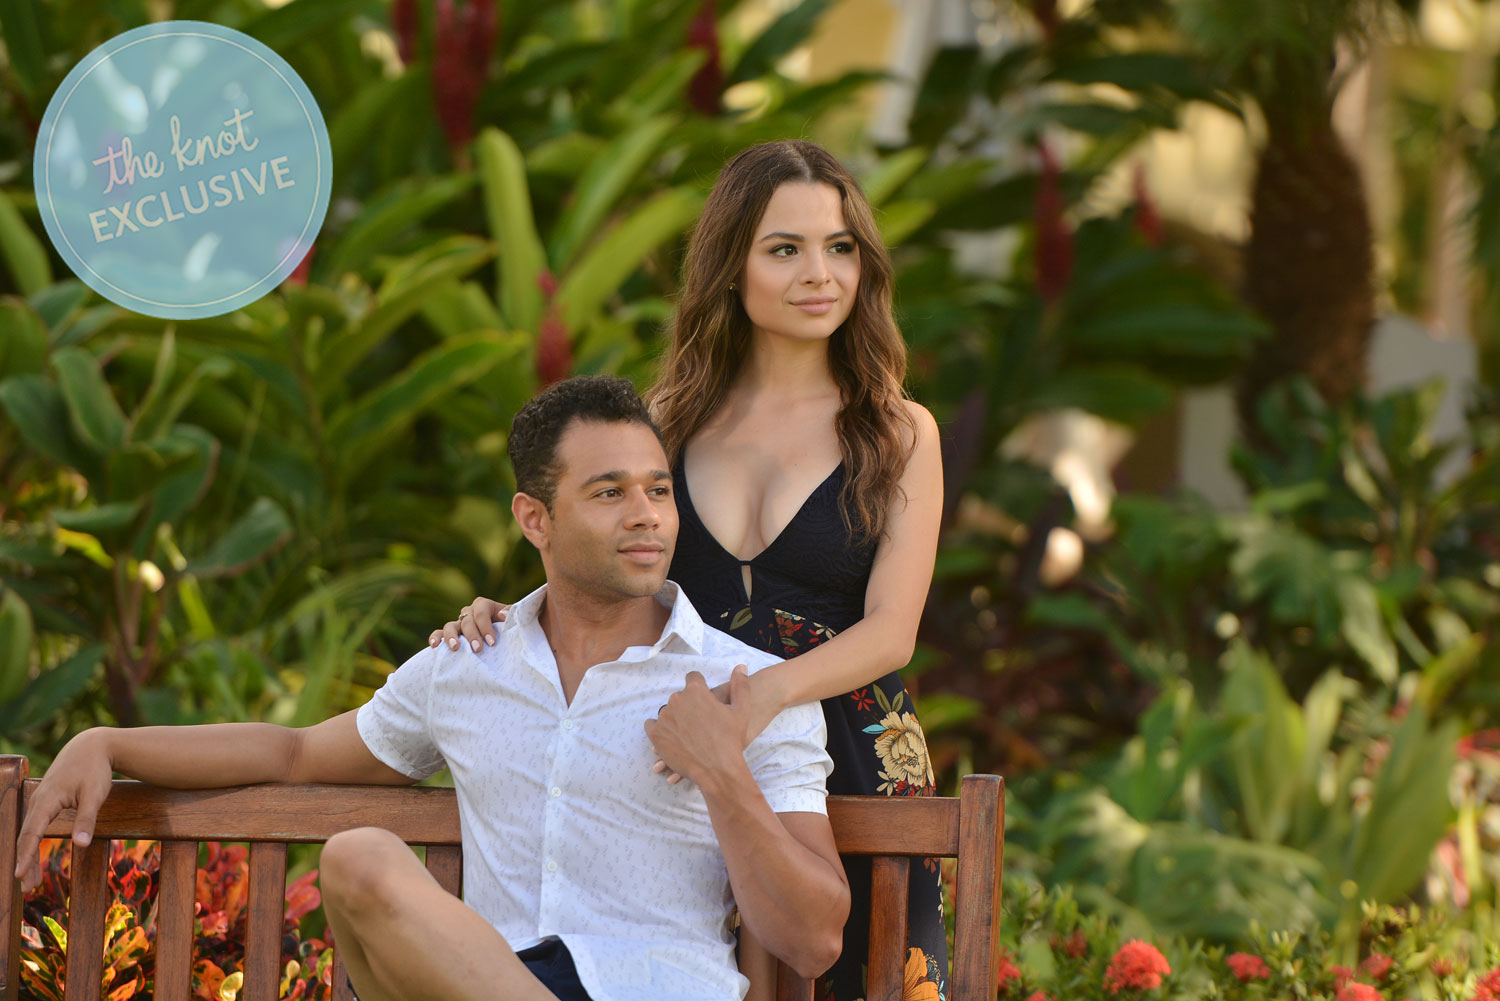 Corbin Bleu and Sasha Clements tell us all about their extended honeymoon, which they took a year after the wedding—get all the exclusive details straight from the couple. (Sandals Resort)